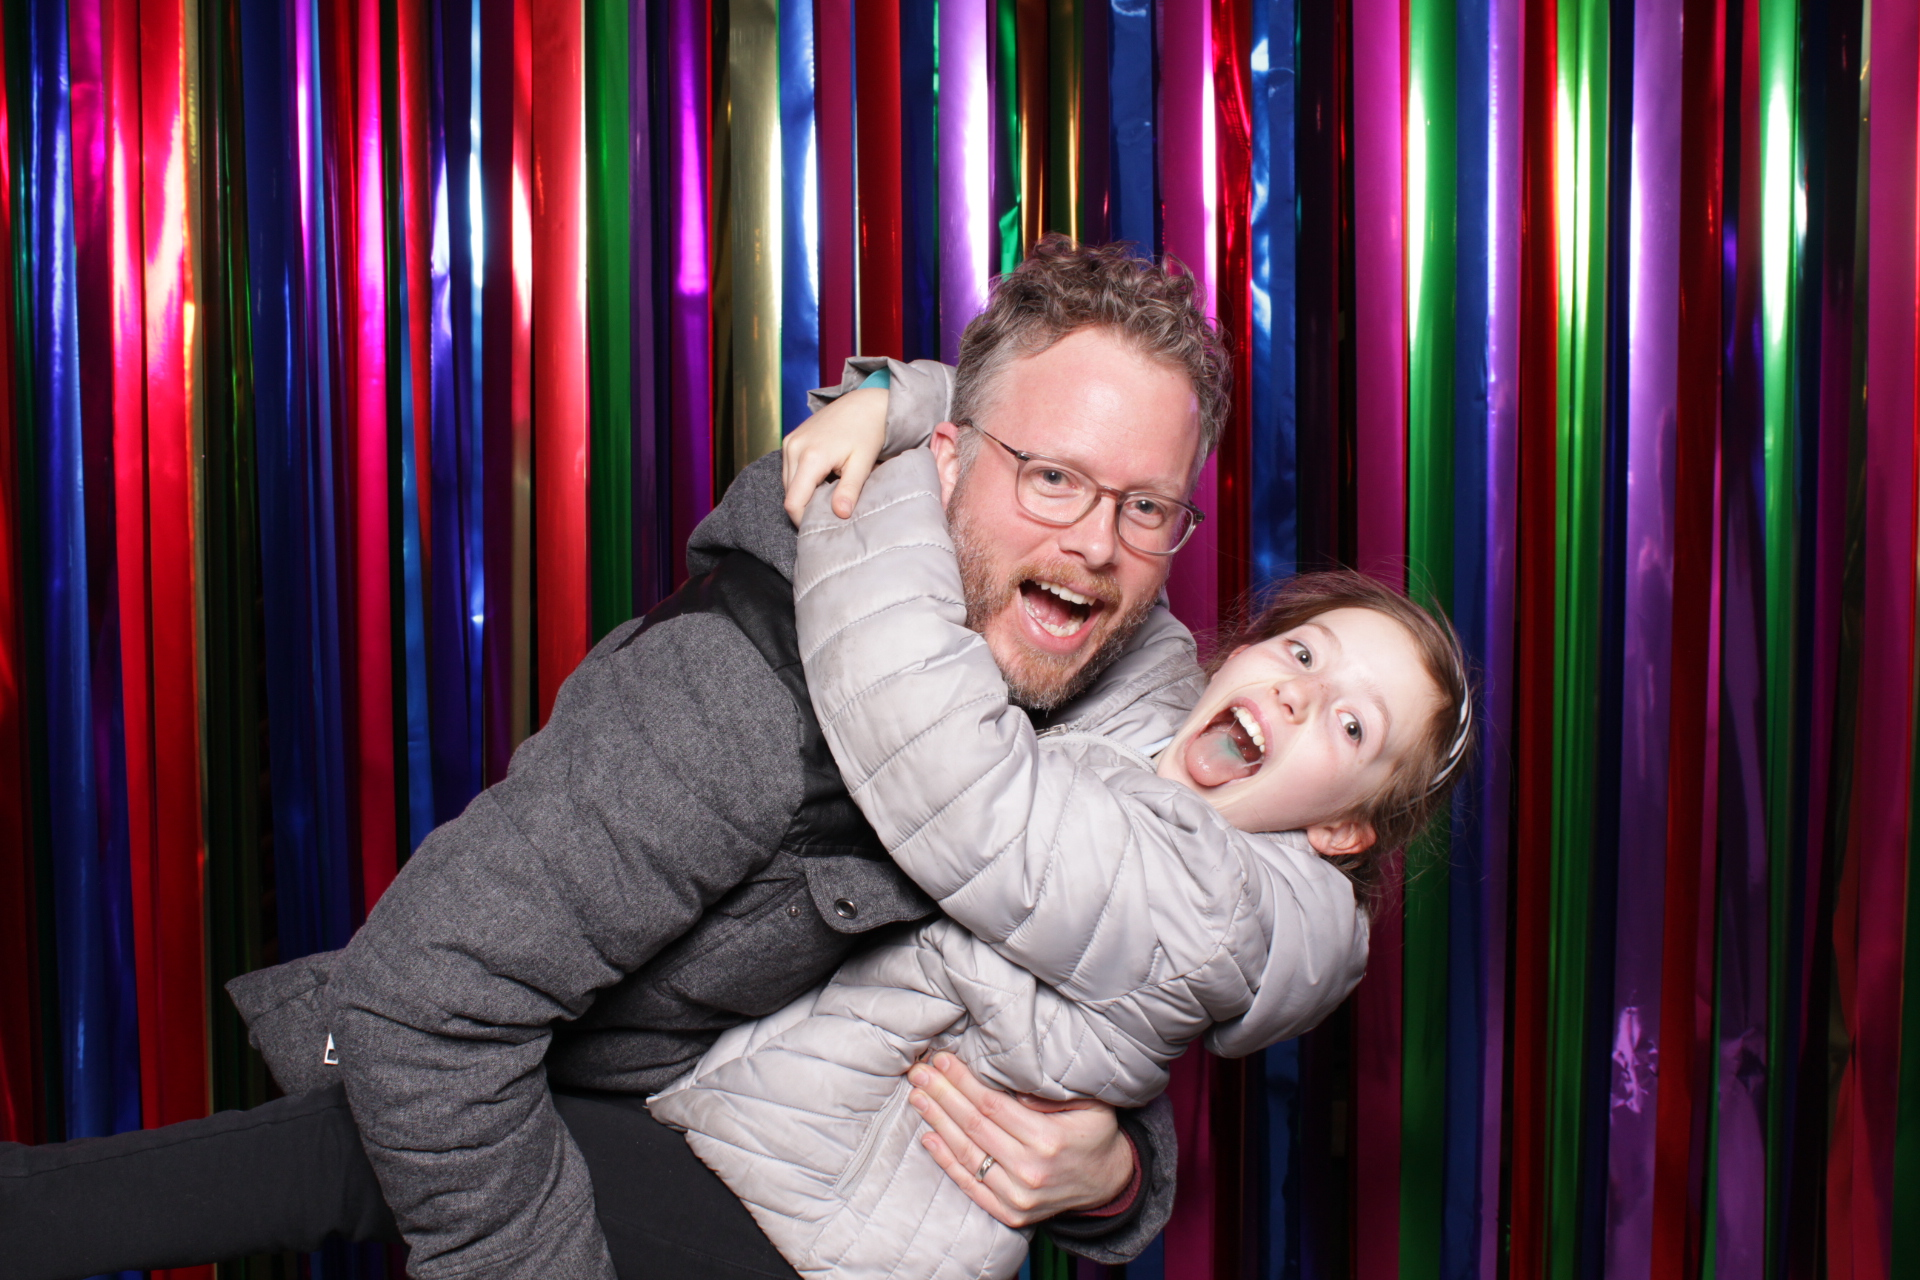 Minneapolis_corporate_Party_photo_booth_rental (15).jpg